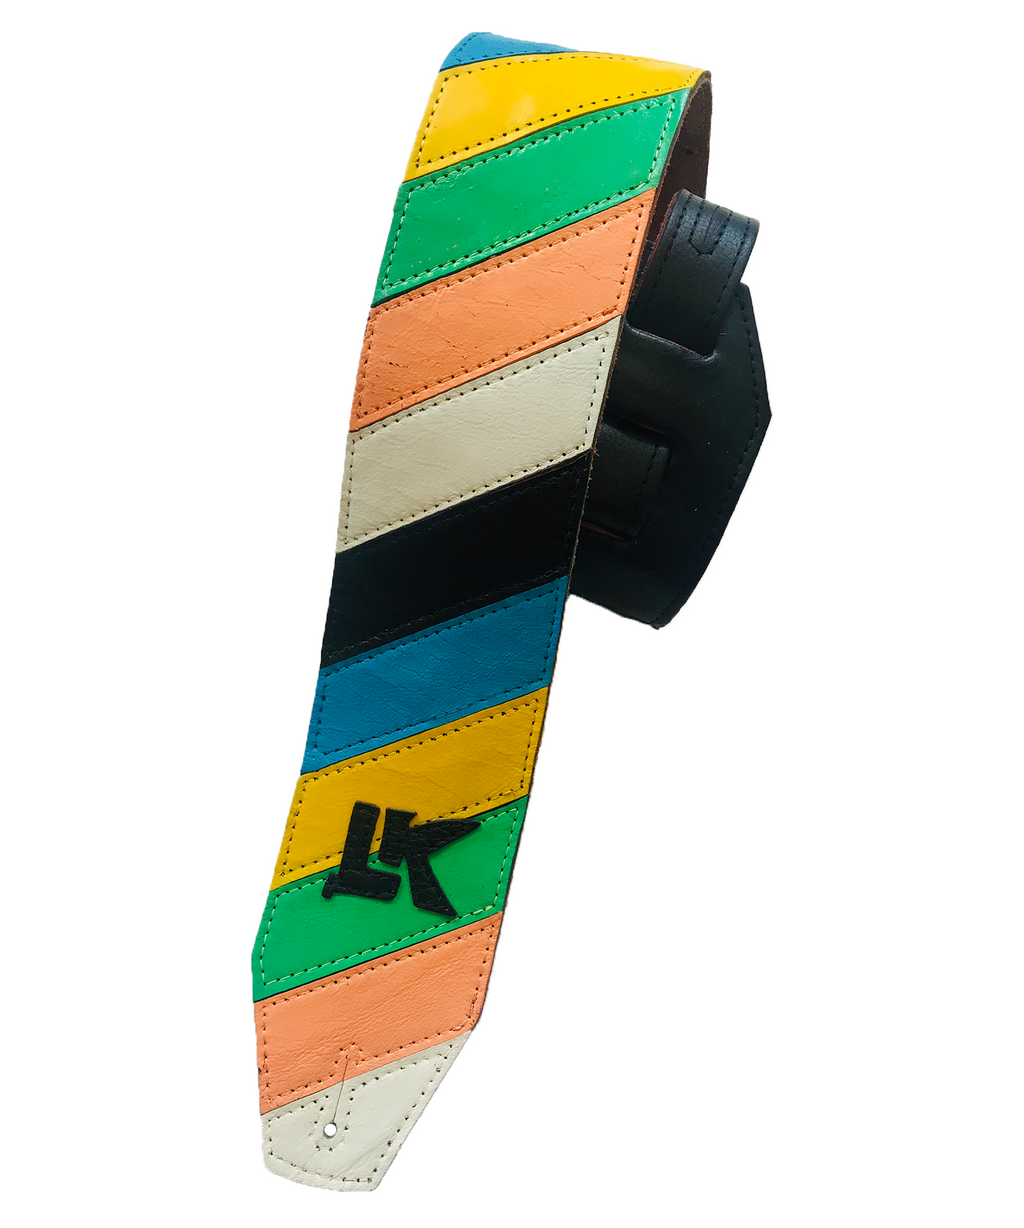 LK Pretty Stripes Strap